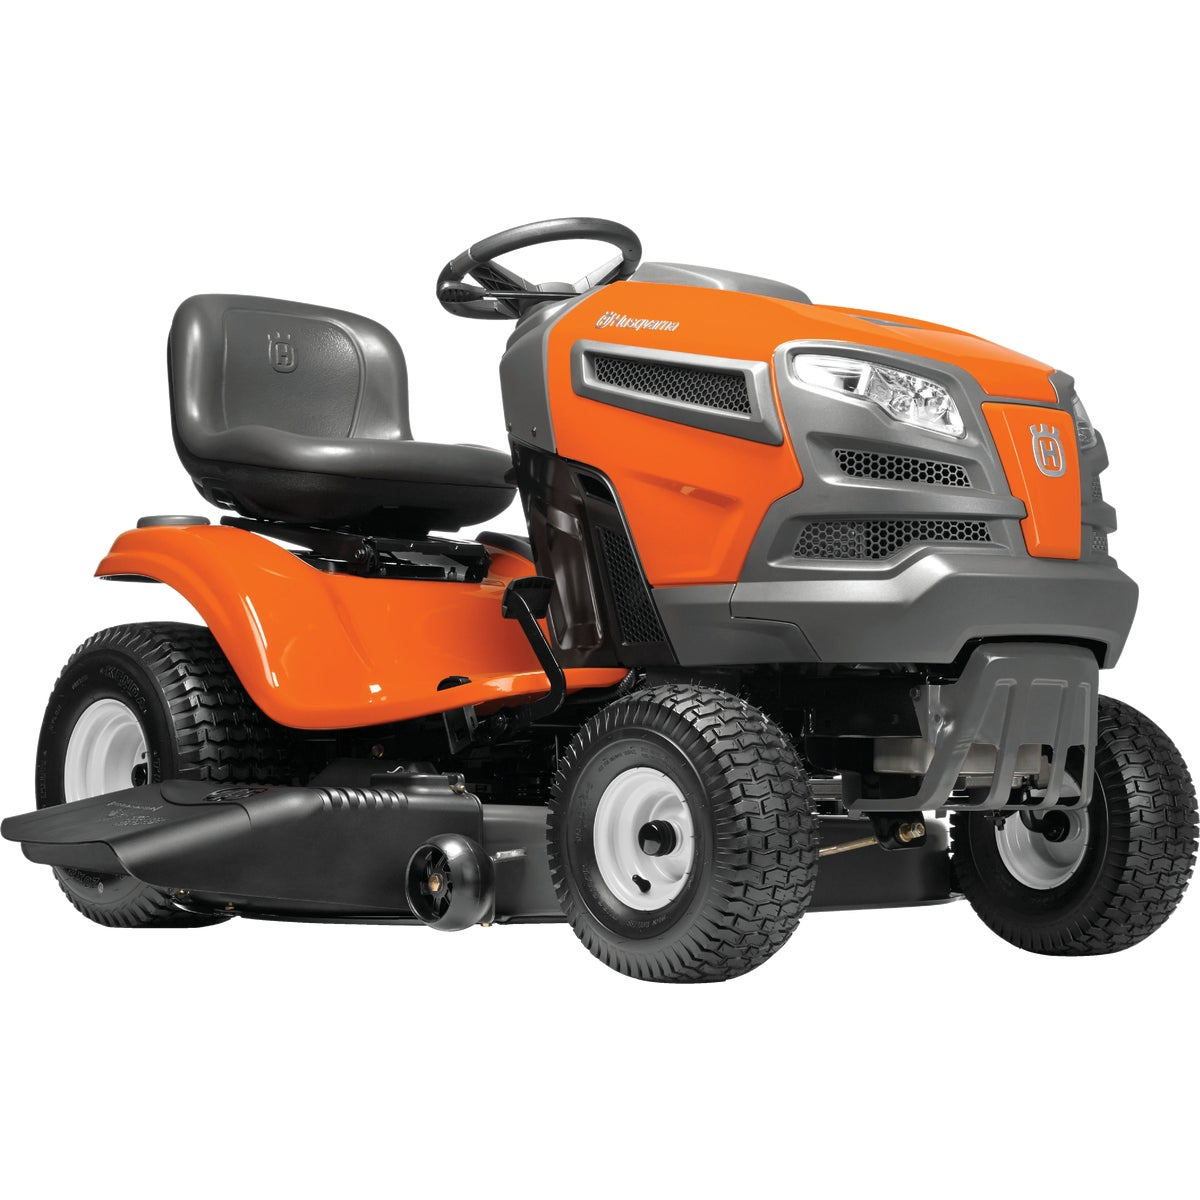 "46"" HYDRO LAWN TRACTOR - 960430181 by Husqvarna Outdoor"